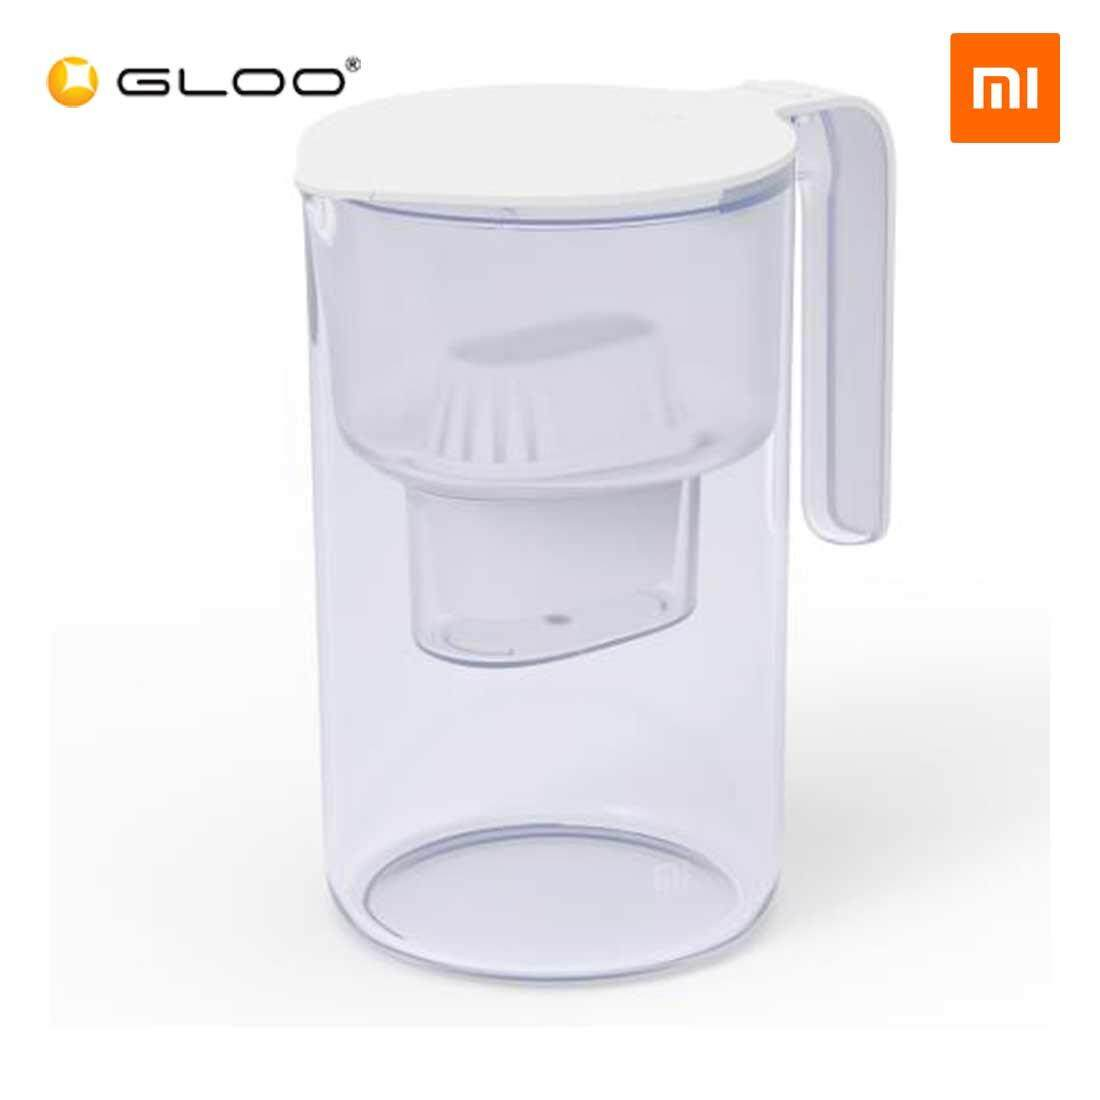 Mi Water Filter Pitcher (White)